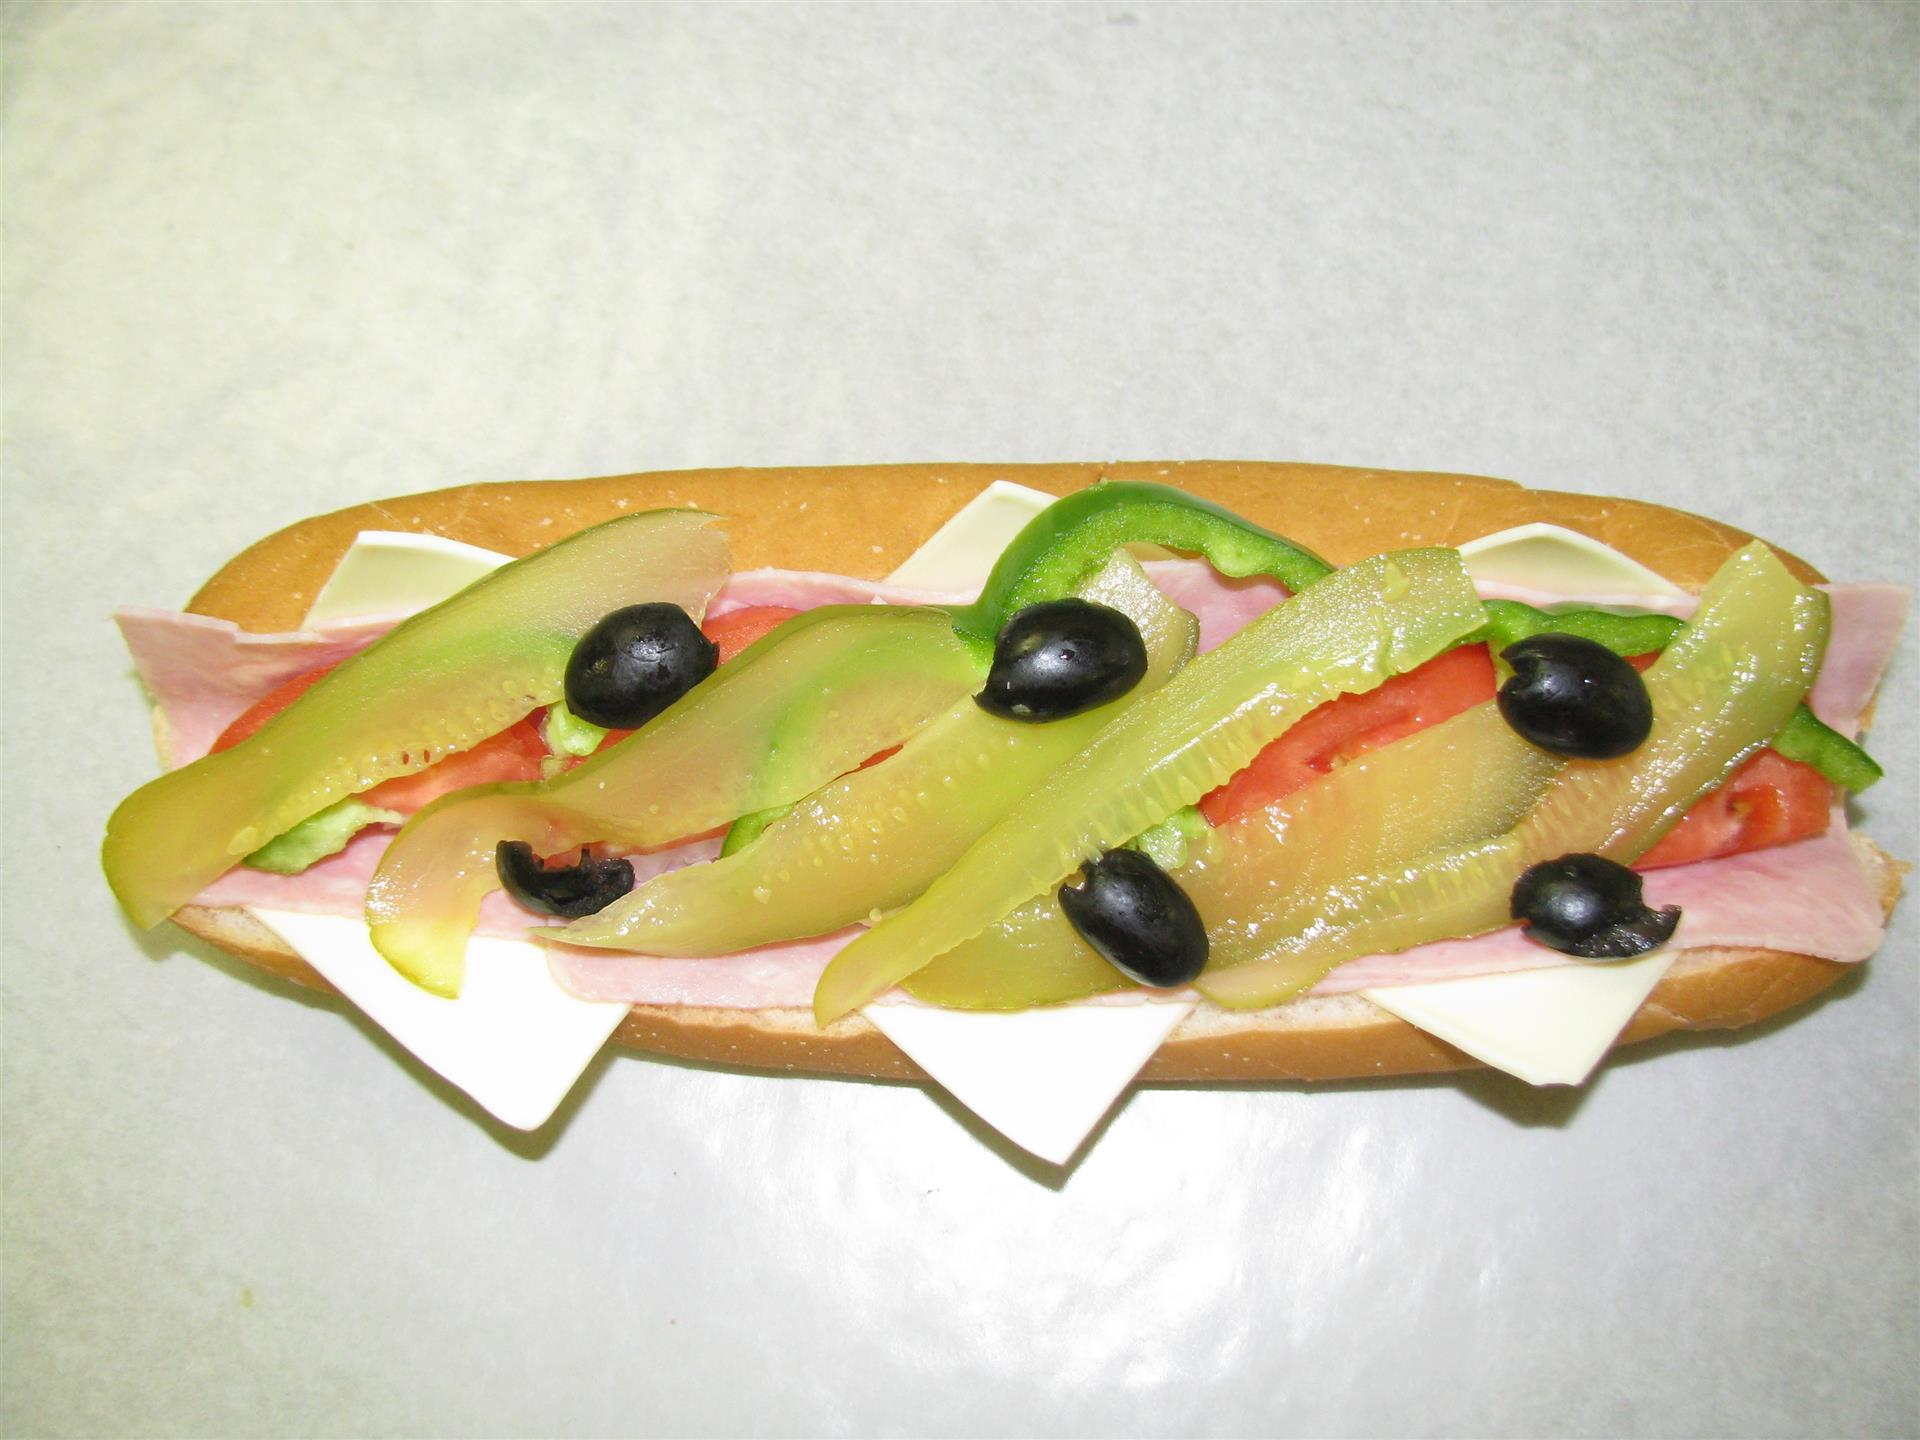 Sub with cheese, deli meats, green peppers. olives and pickles on top